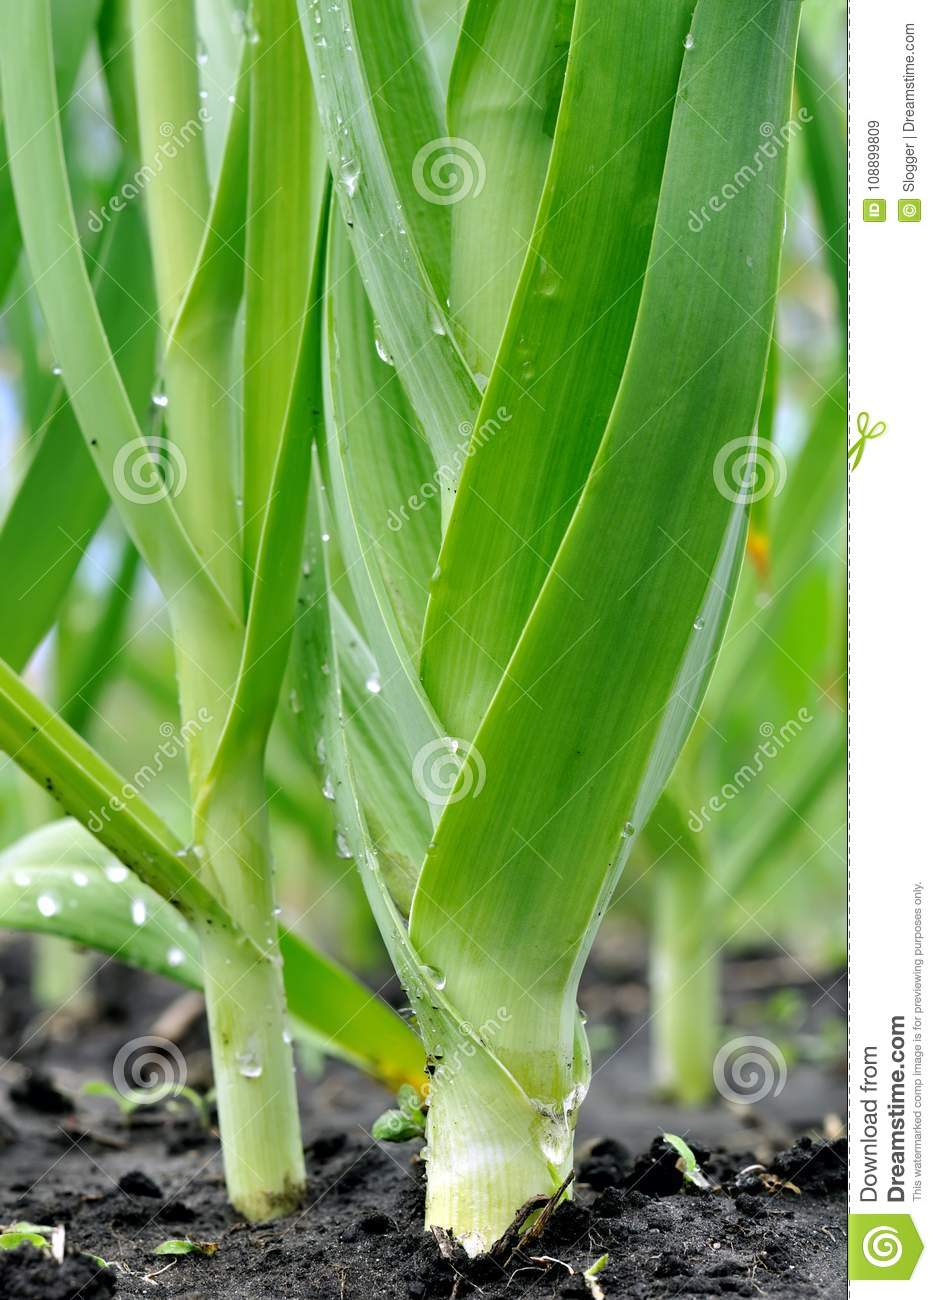 Organically cultivated leek plantation in the vegetable garden